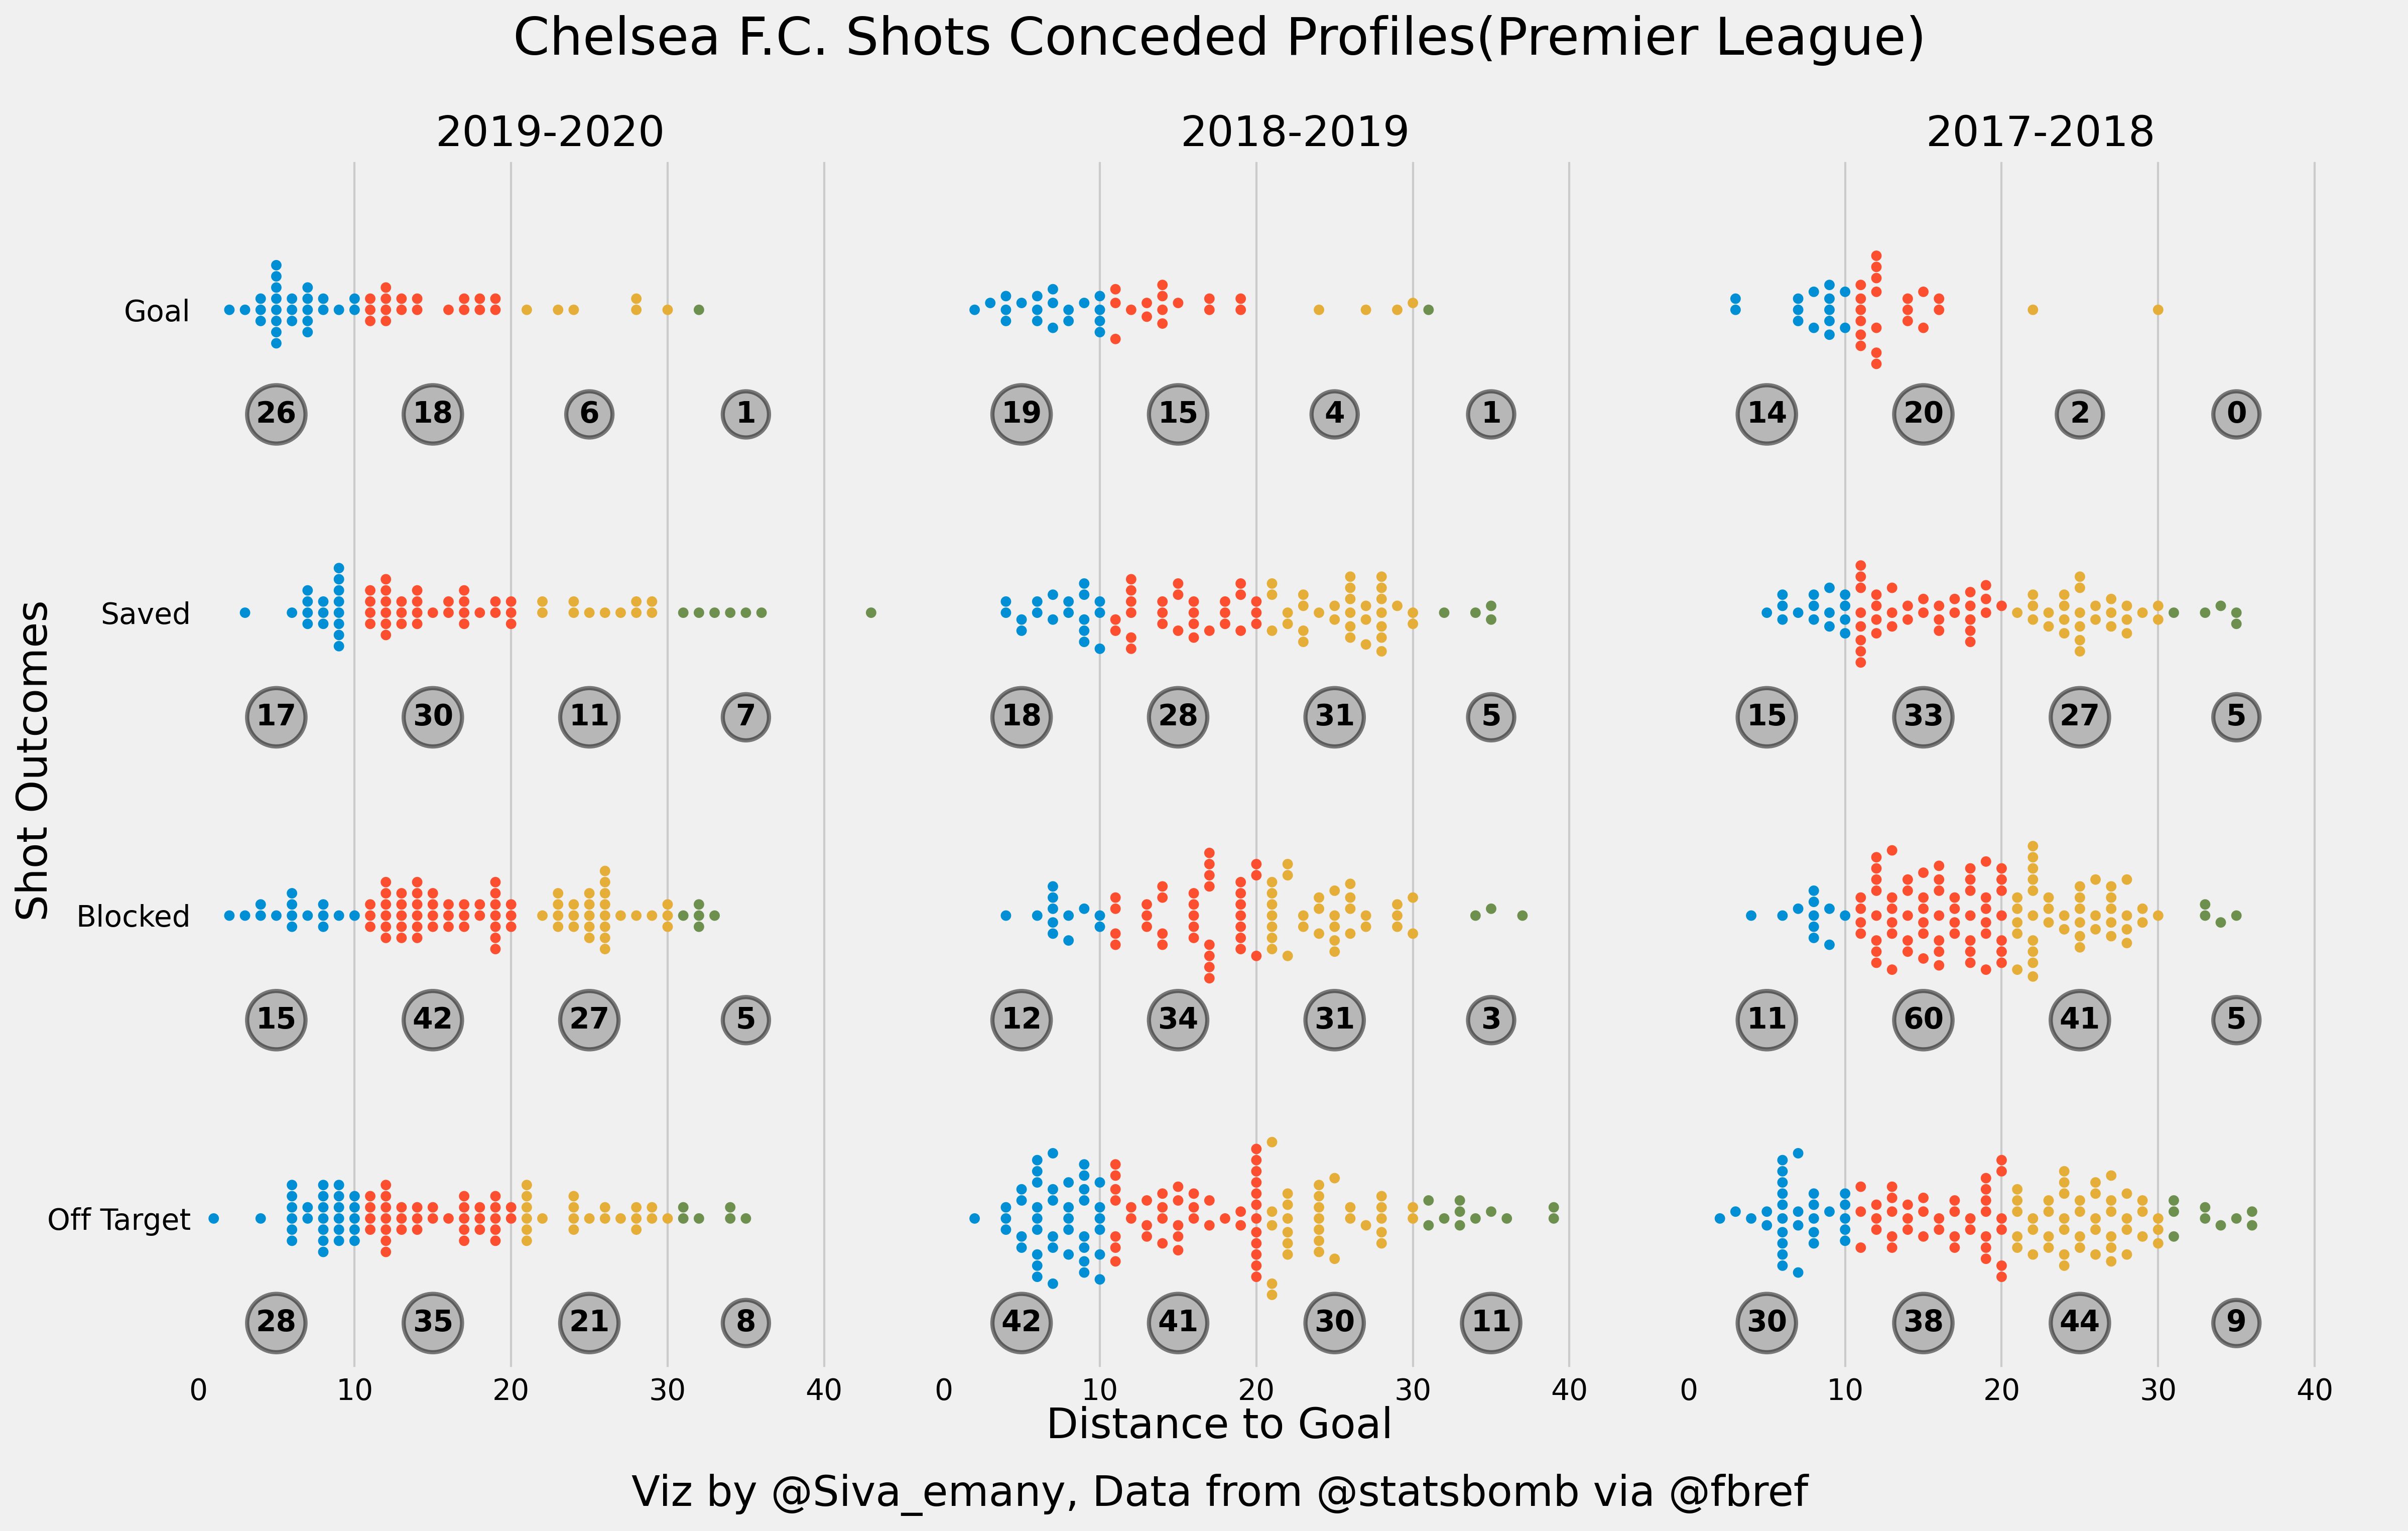 Distribution of Shots conceded